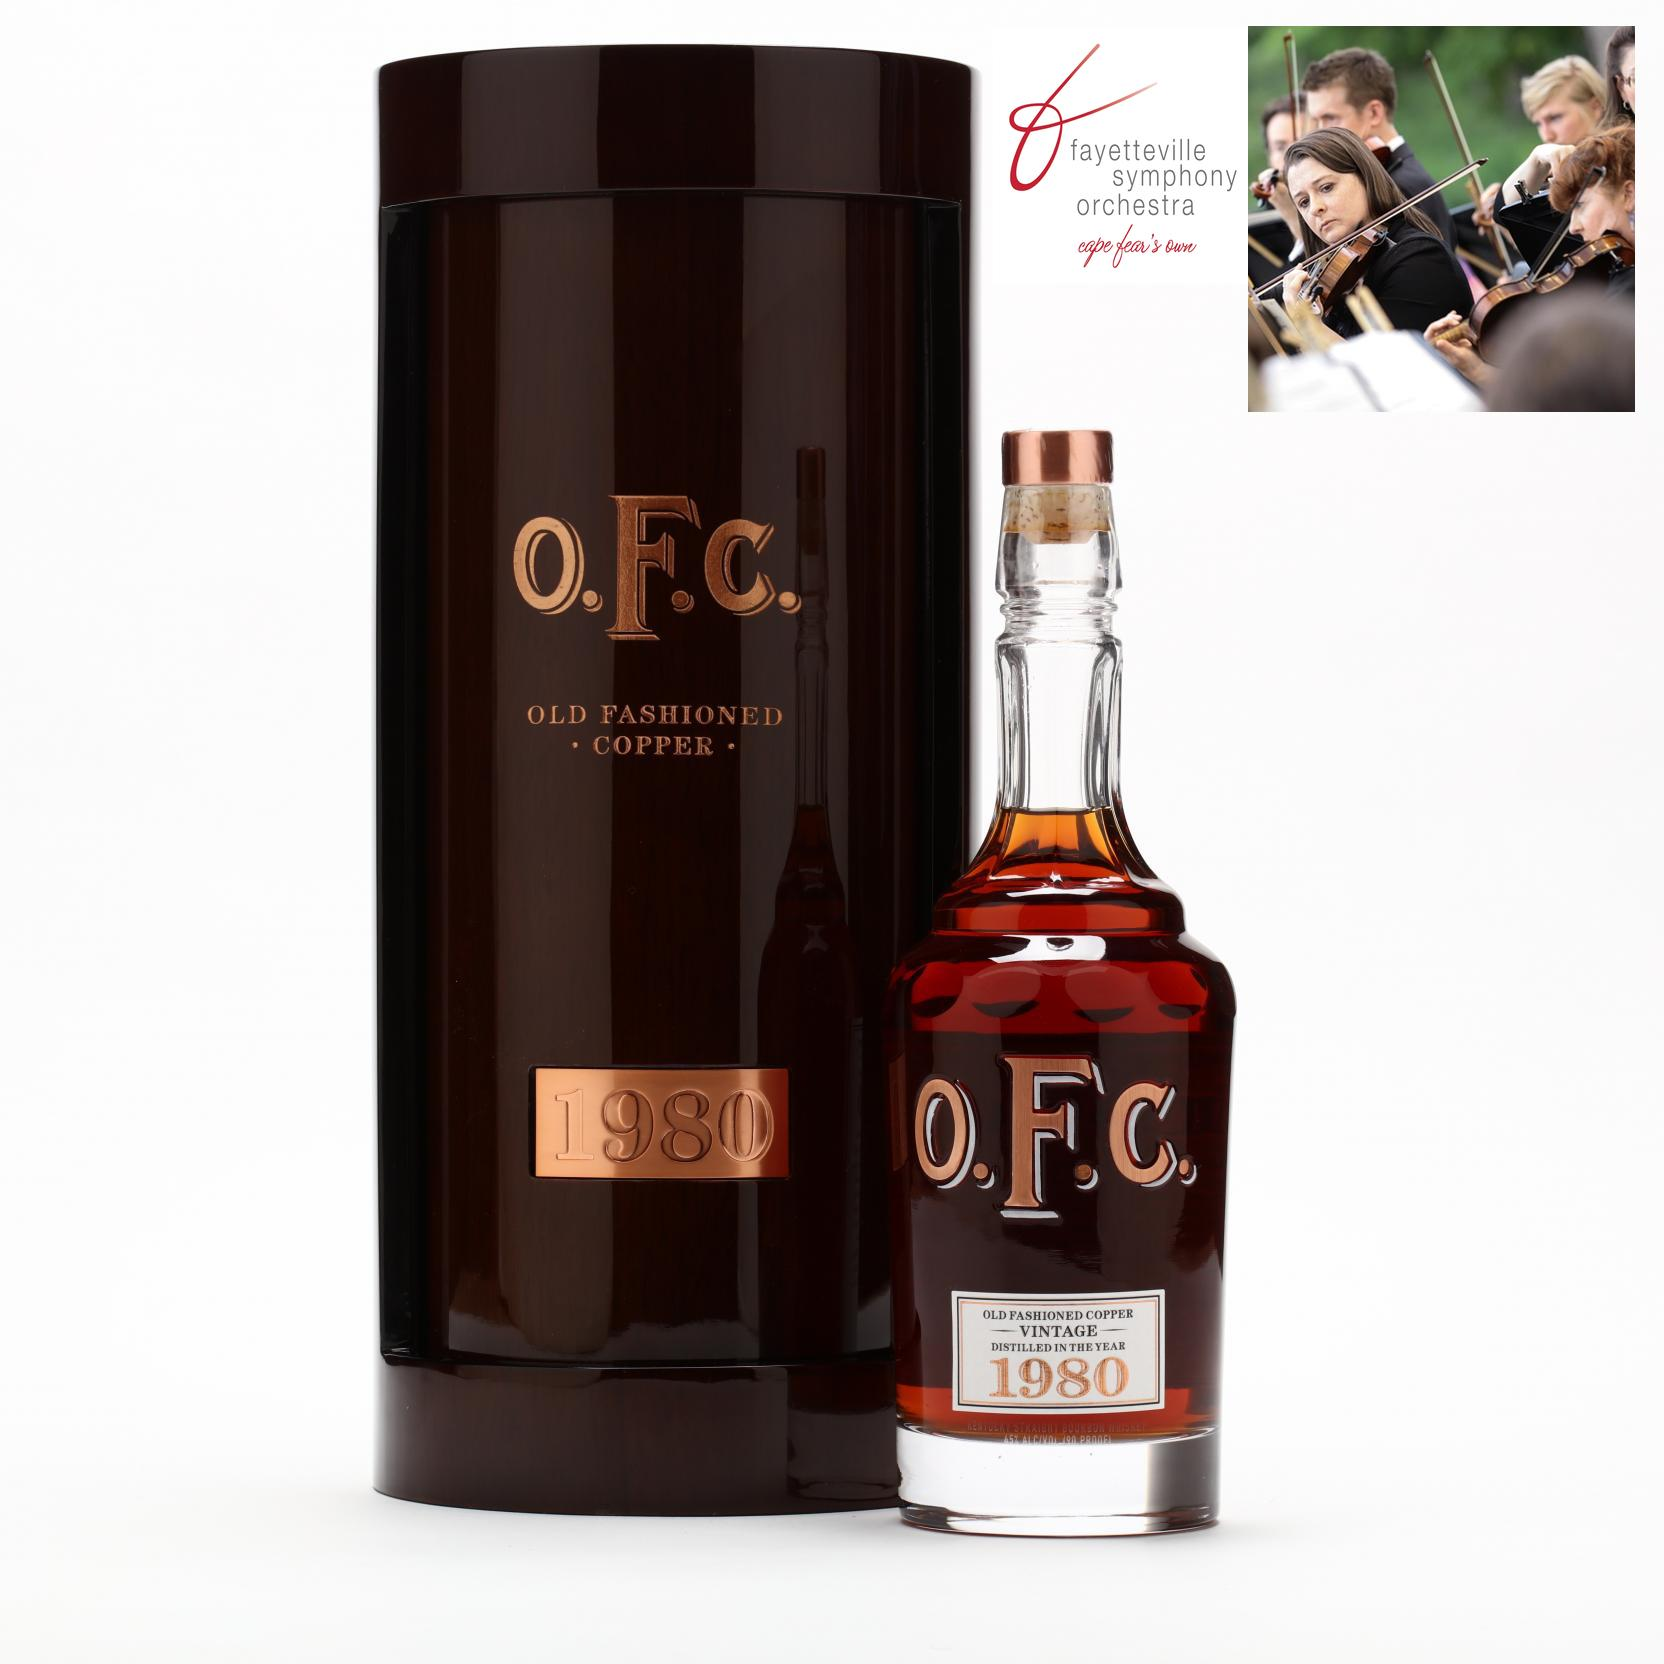 o-f-c-distillery-whiskey-charity-bottle-benefiting-the-fayetteville-symphony-orchestra